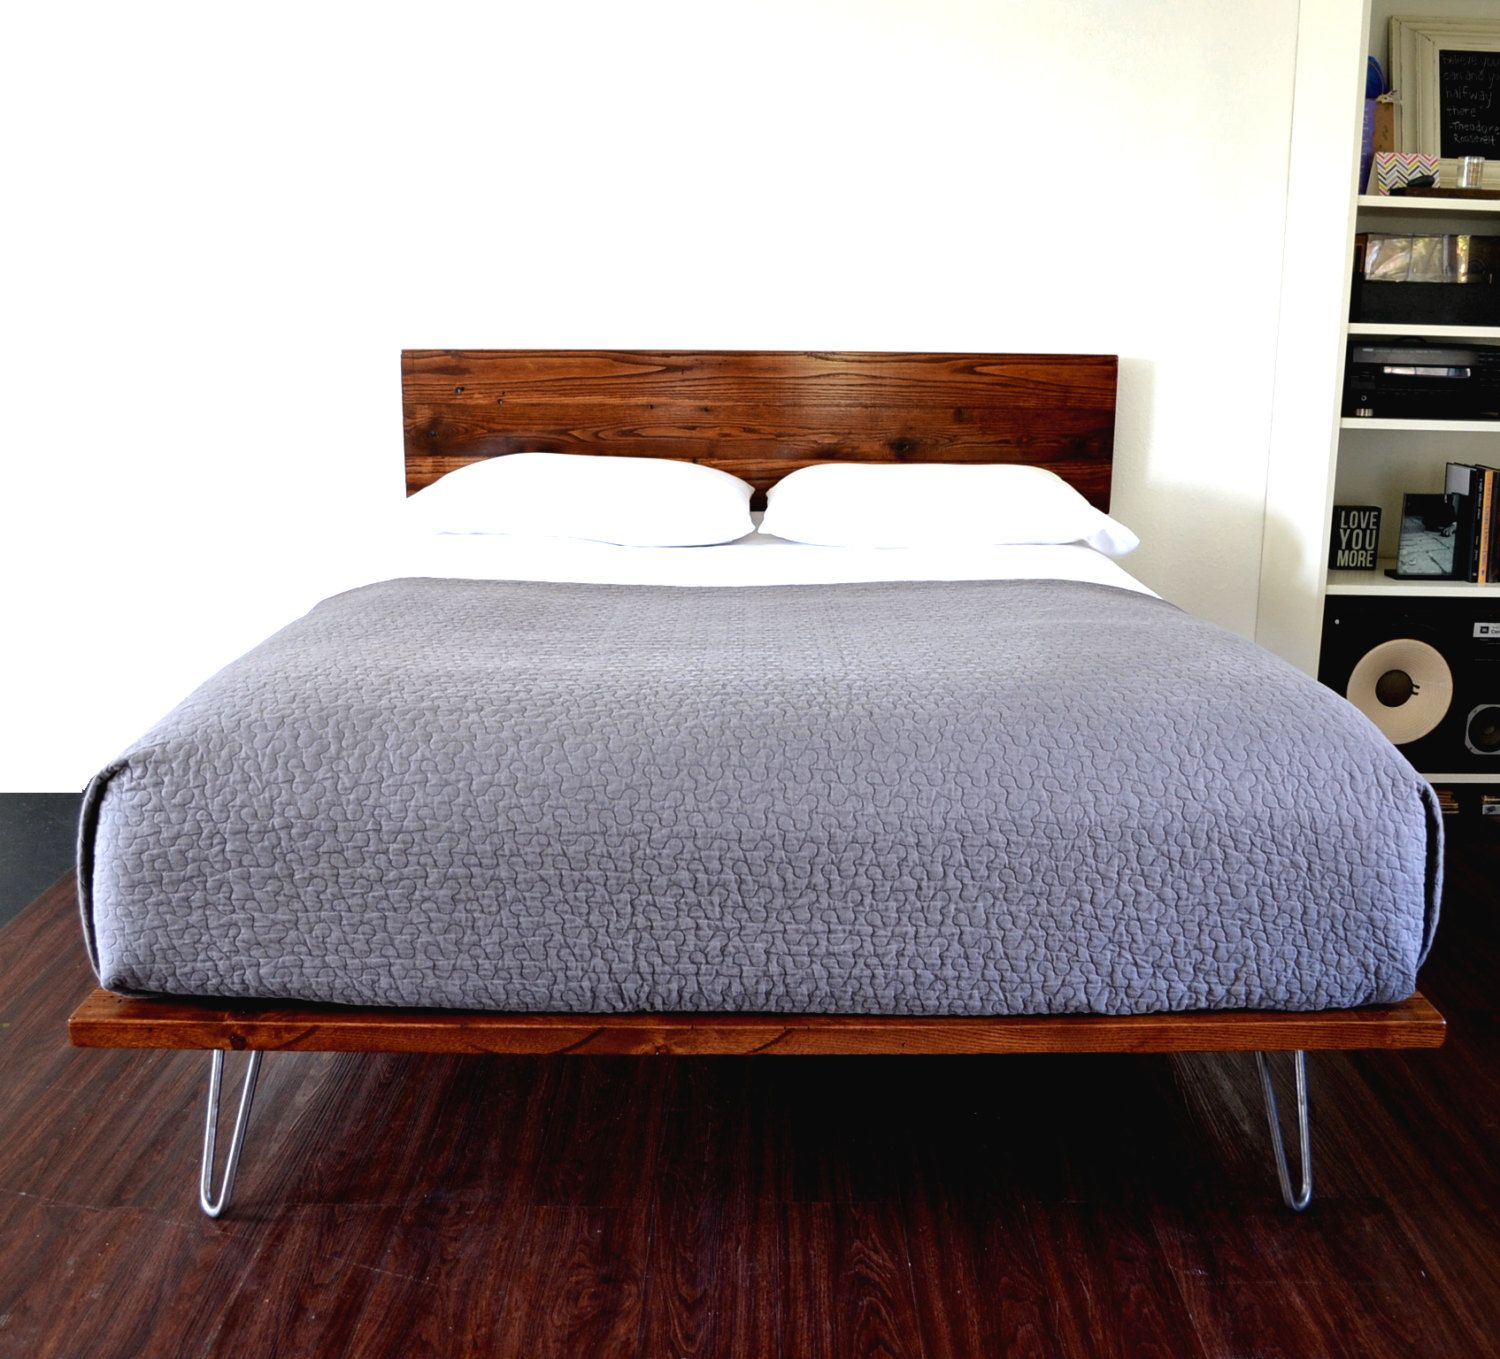 SALE ITEM Reclaimed Wood Platform Bed And Headboard On Hairpin Legs ...